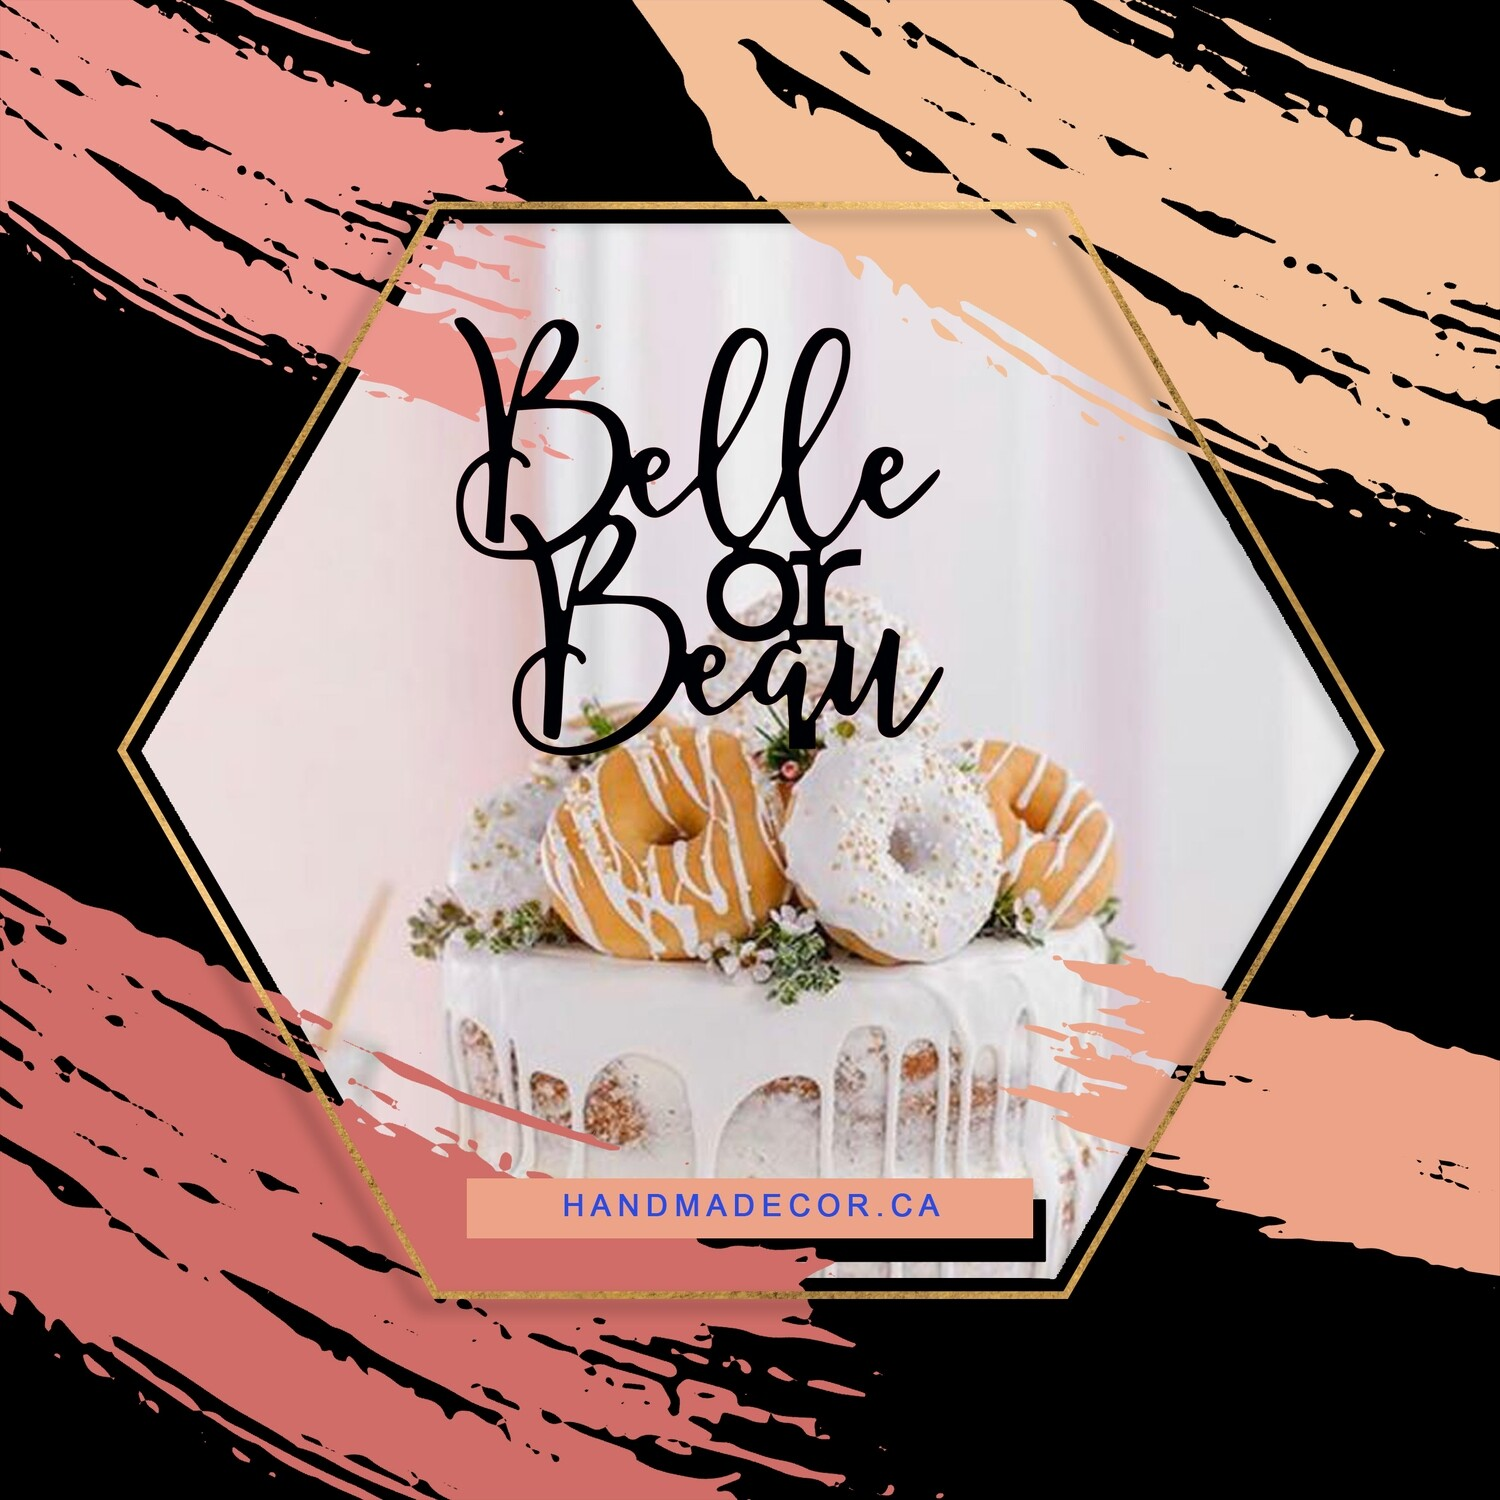 A digital file belle Or Bean cake topper - baby shower cake topper